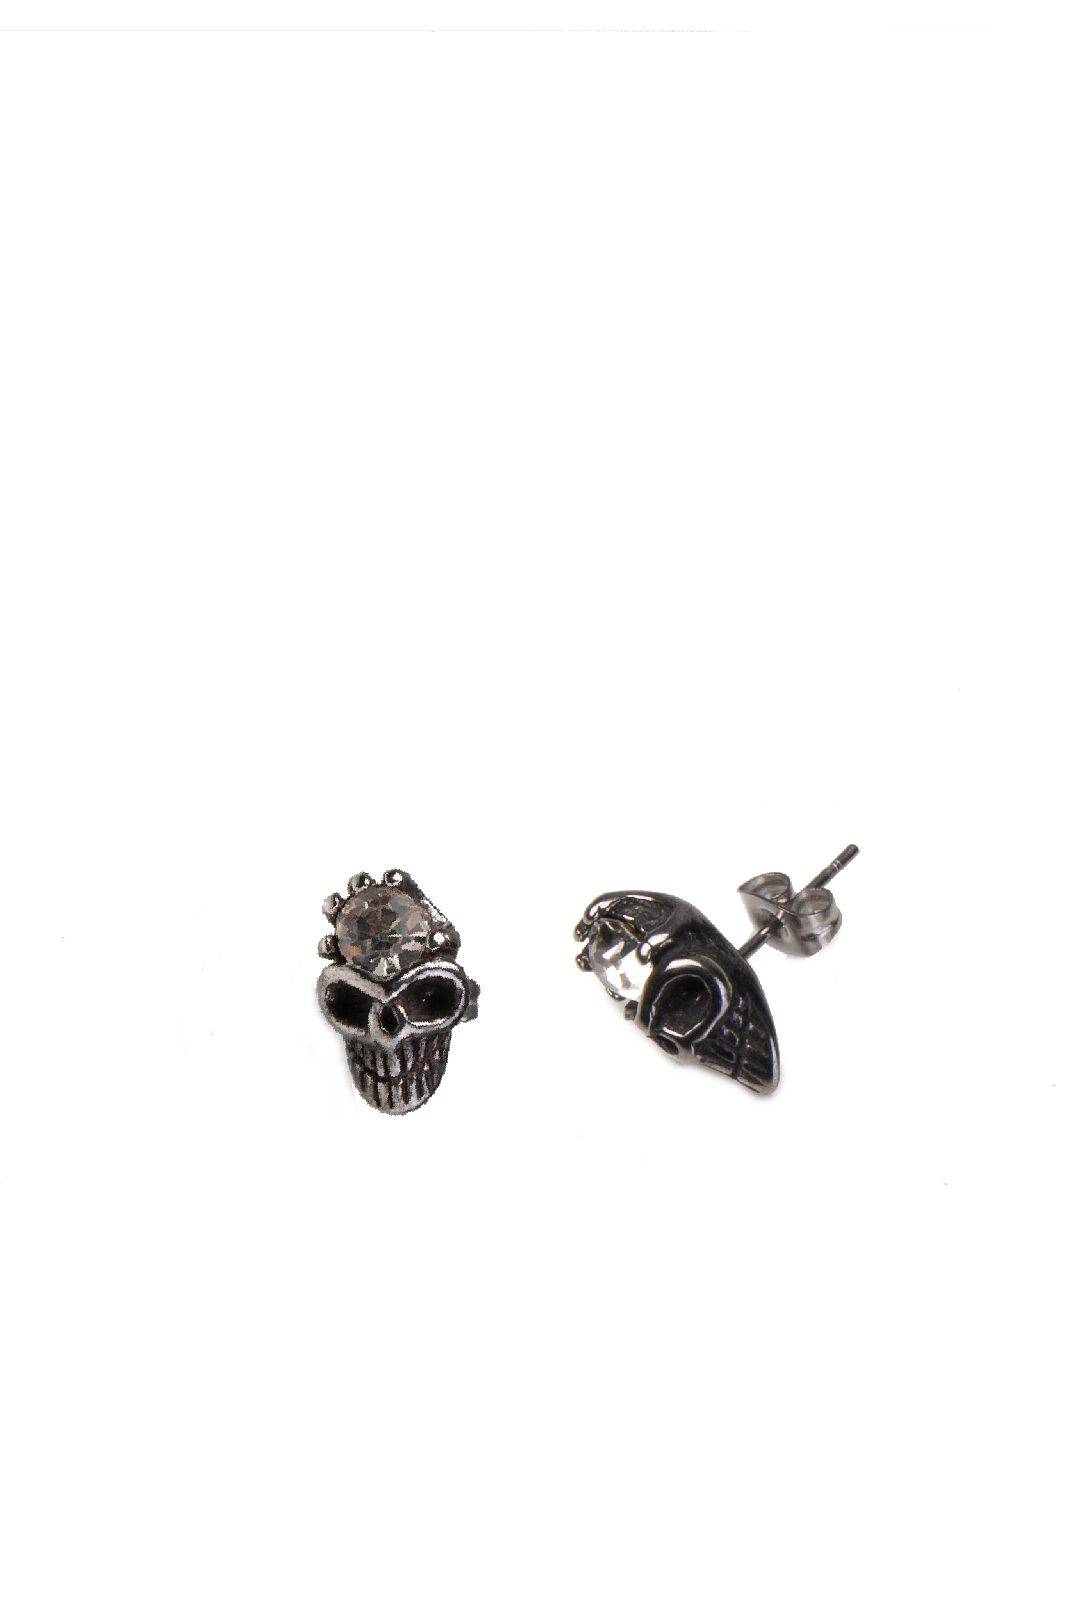 Skull Gem Studded Earrings